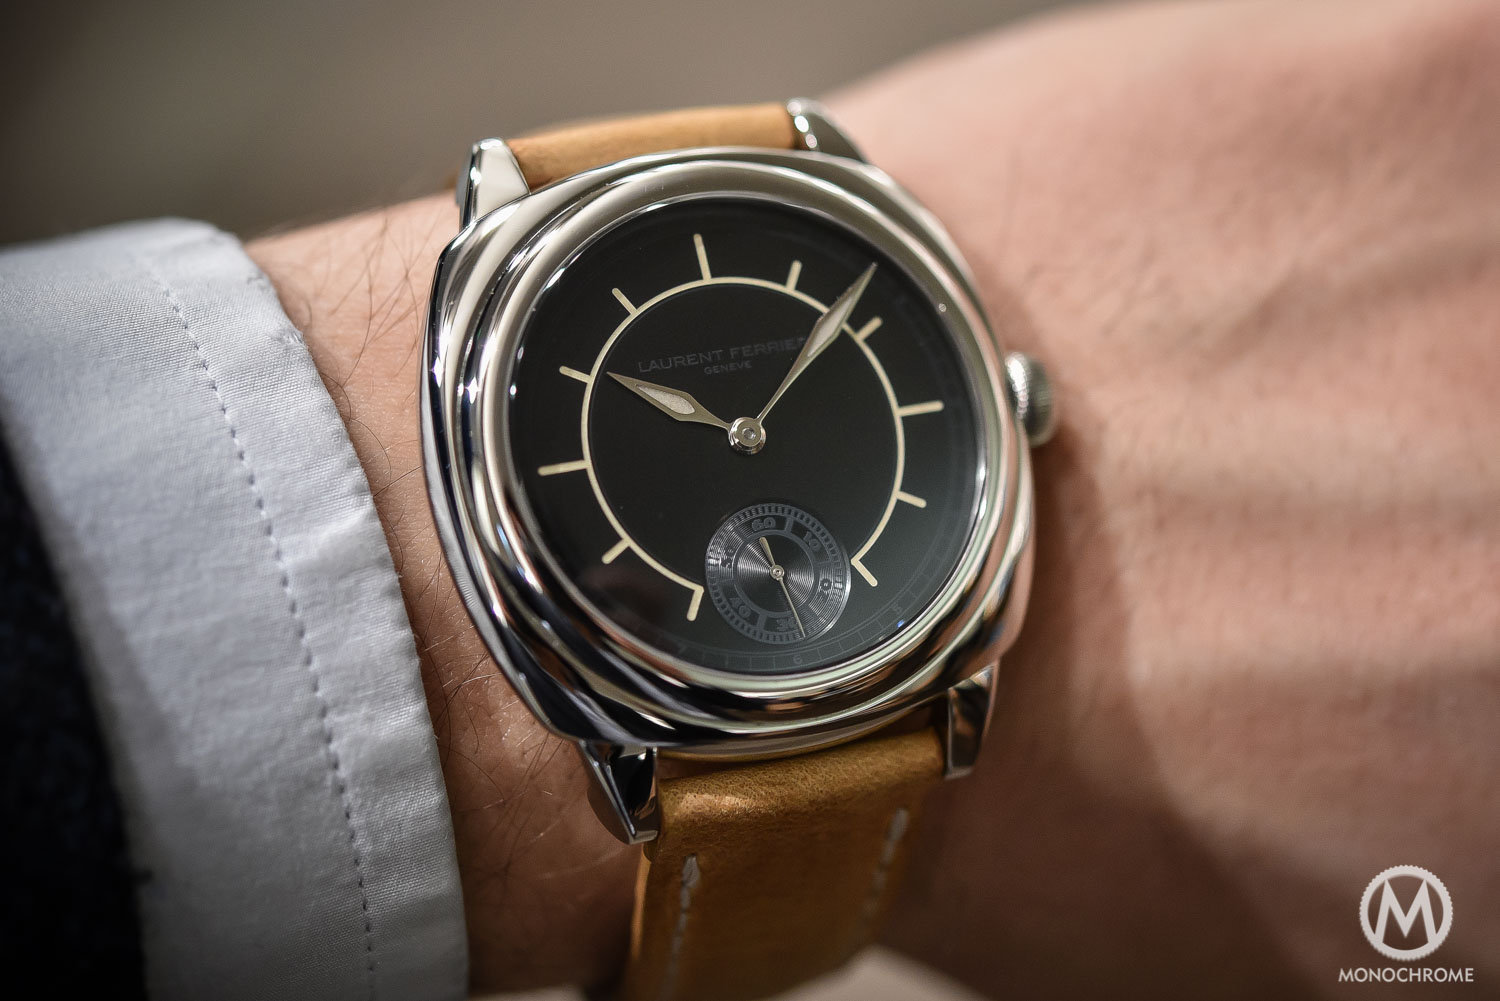 Laurent Ferrier Galet Square Boreal SIHH 2016 - _0915